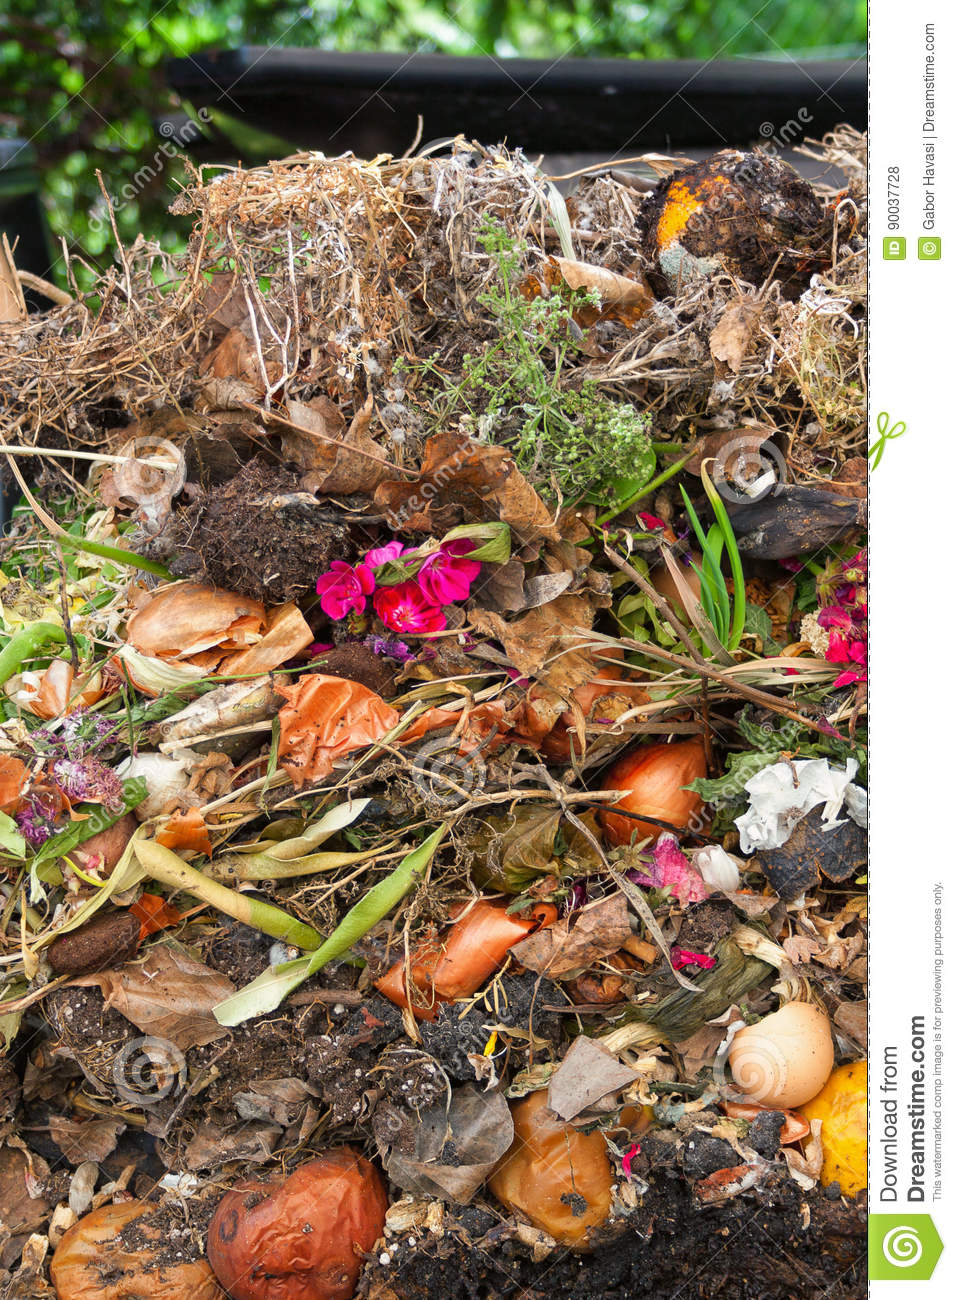 Organic waste stock photo. Image of decay, agriculture - 90037728